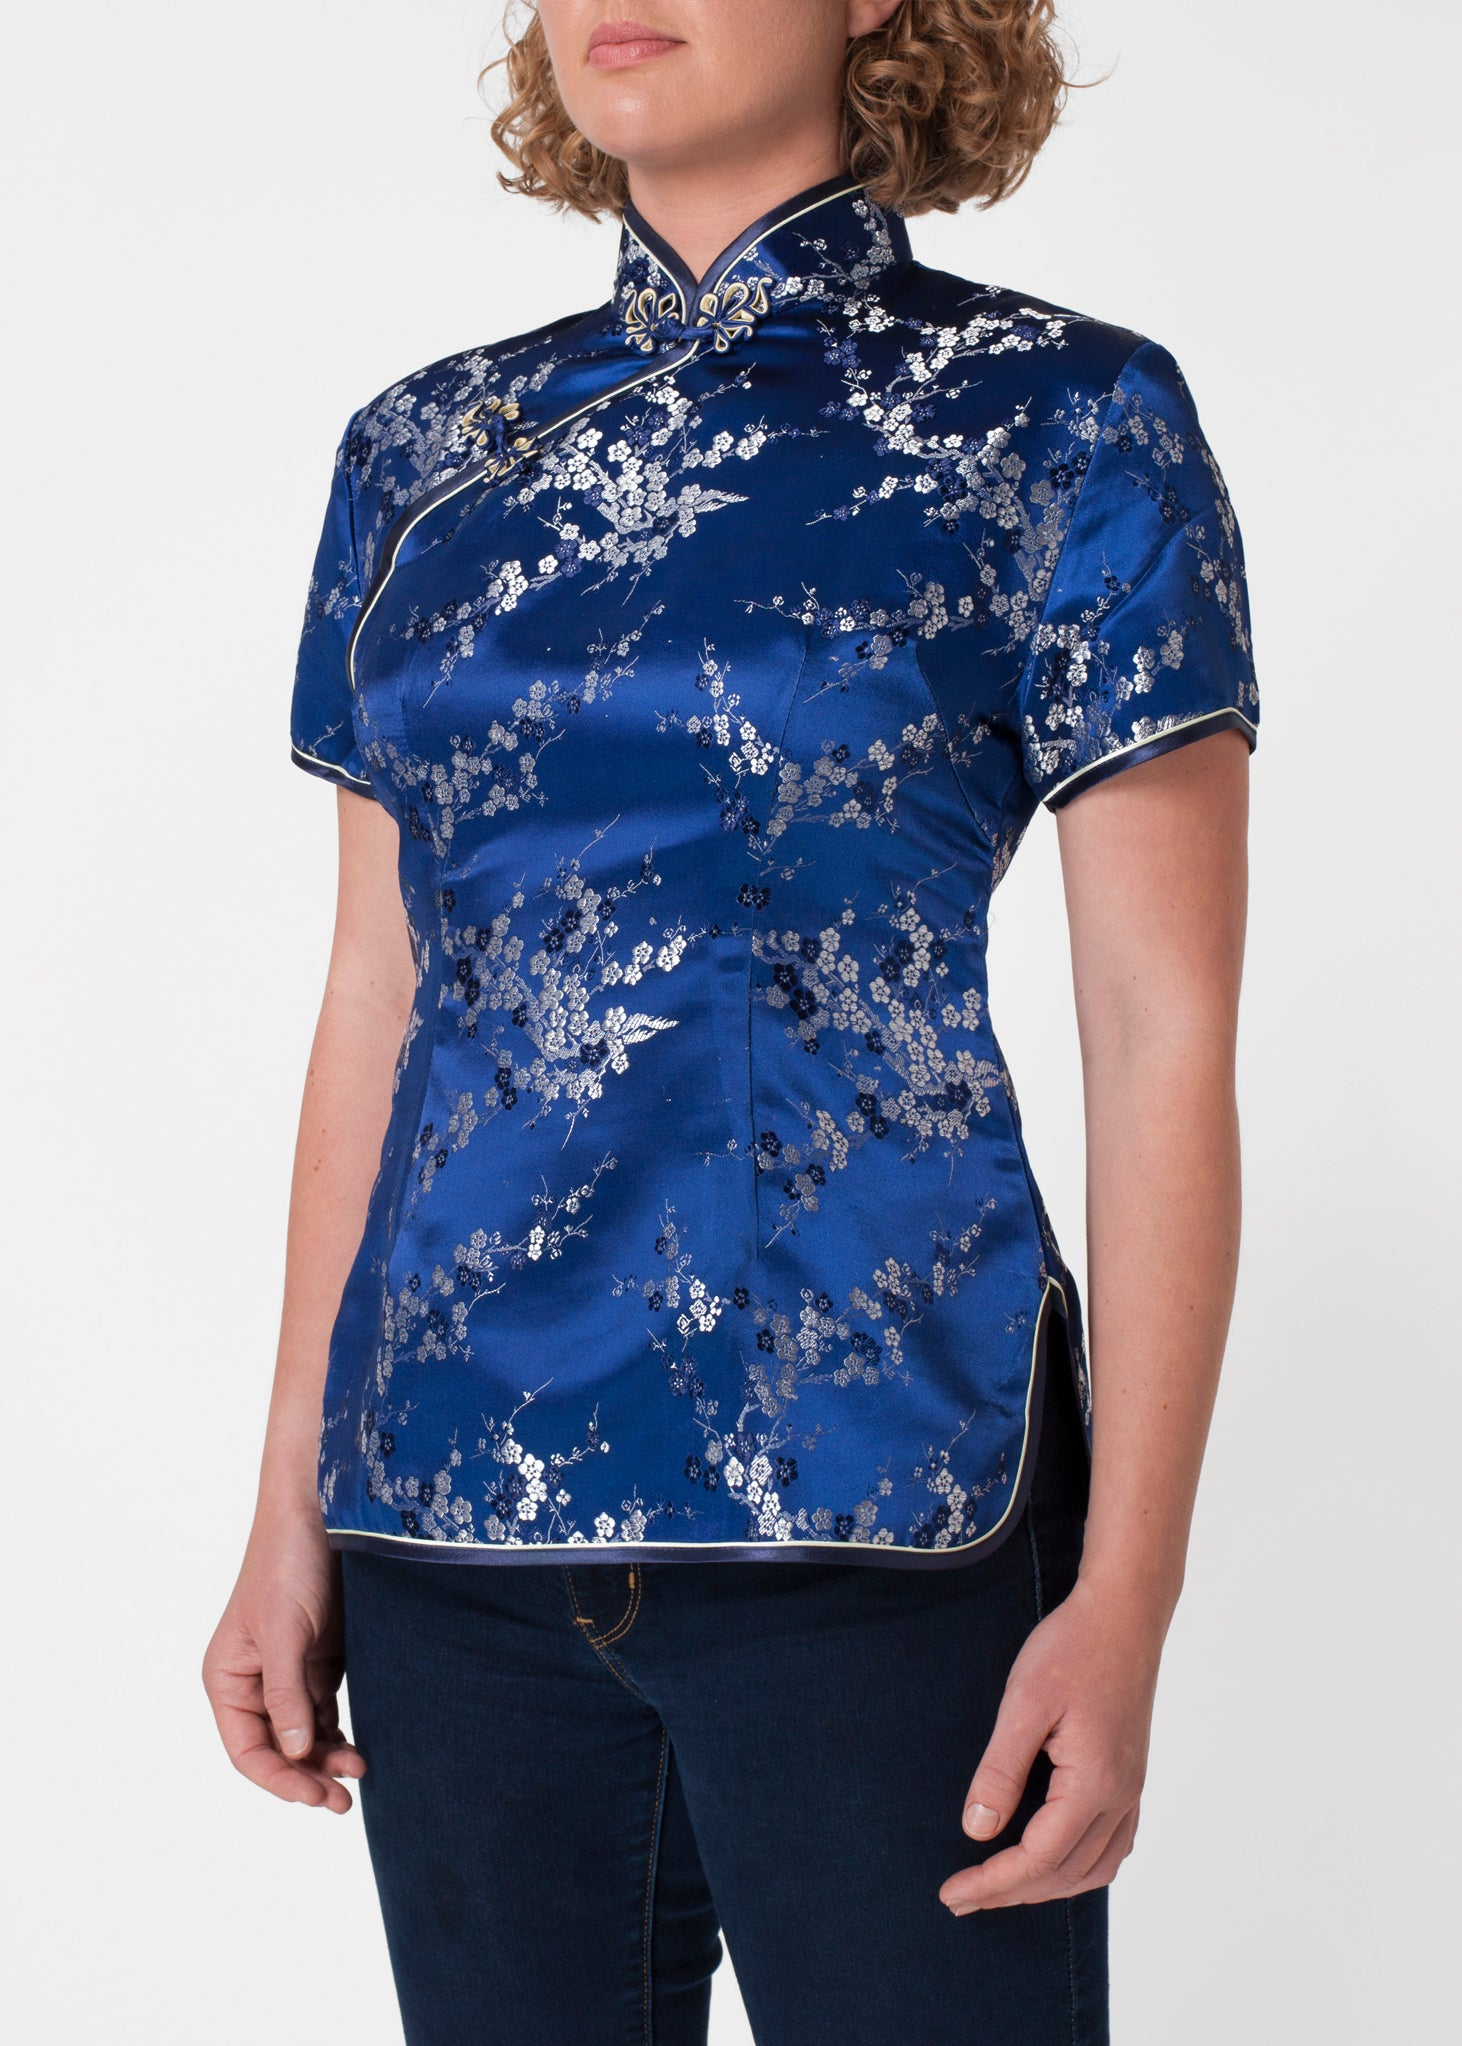 Traditional Chinese blouse in Cheongsam or Qipao style with distinctive Chinese features of mandarin collar, hand stitched flower and knot frog fastenings and side zip. Manufactured in authentic high quality silk/rayon brocade in rich blue and silver cherry blossom design - a symbol of female beauty and love.